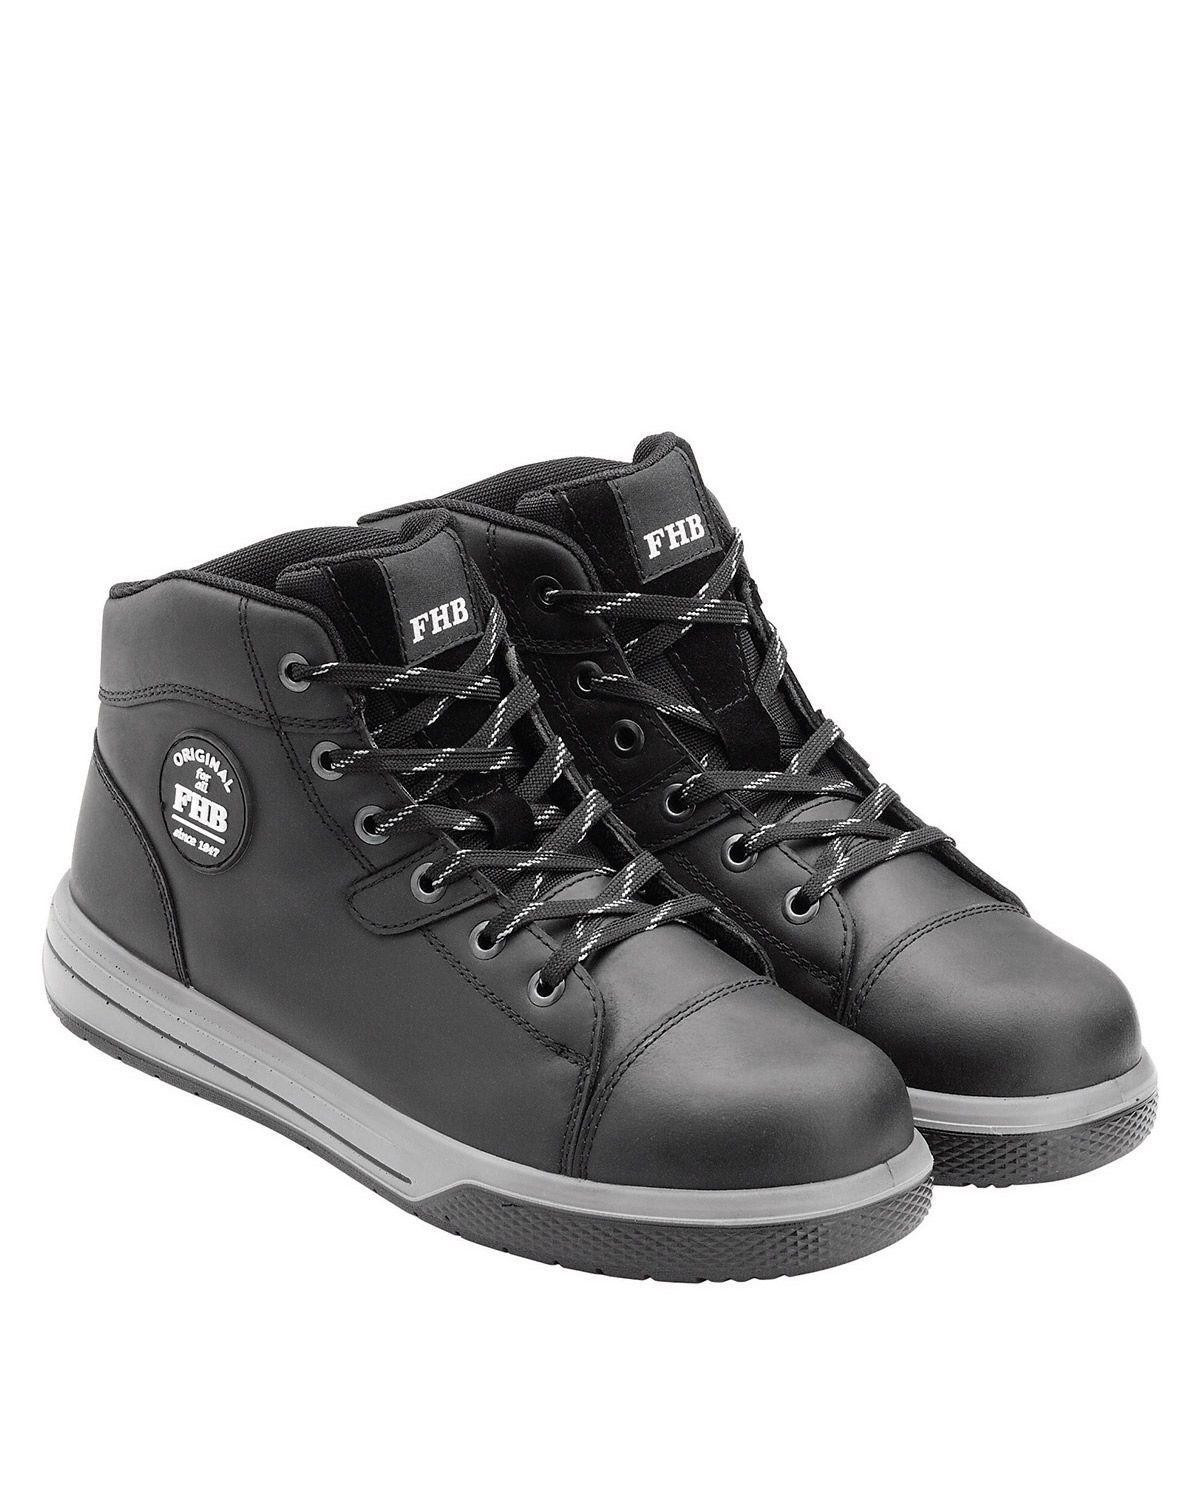 Image of   FHB High Top Sikkerhedssko - Linus (Sort, 47 EU / 13 UK)